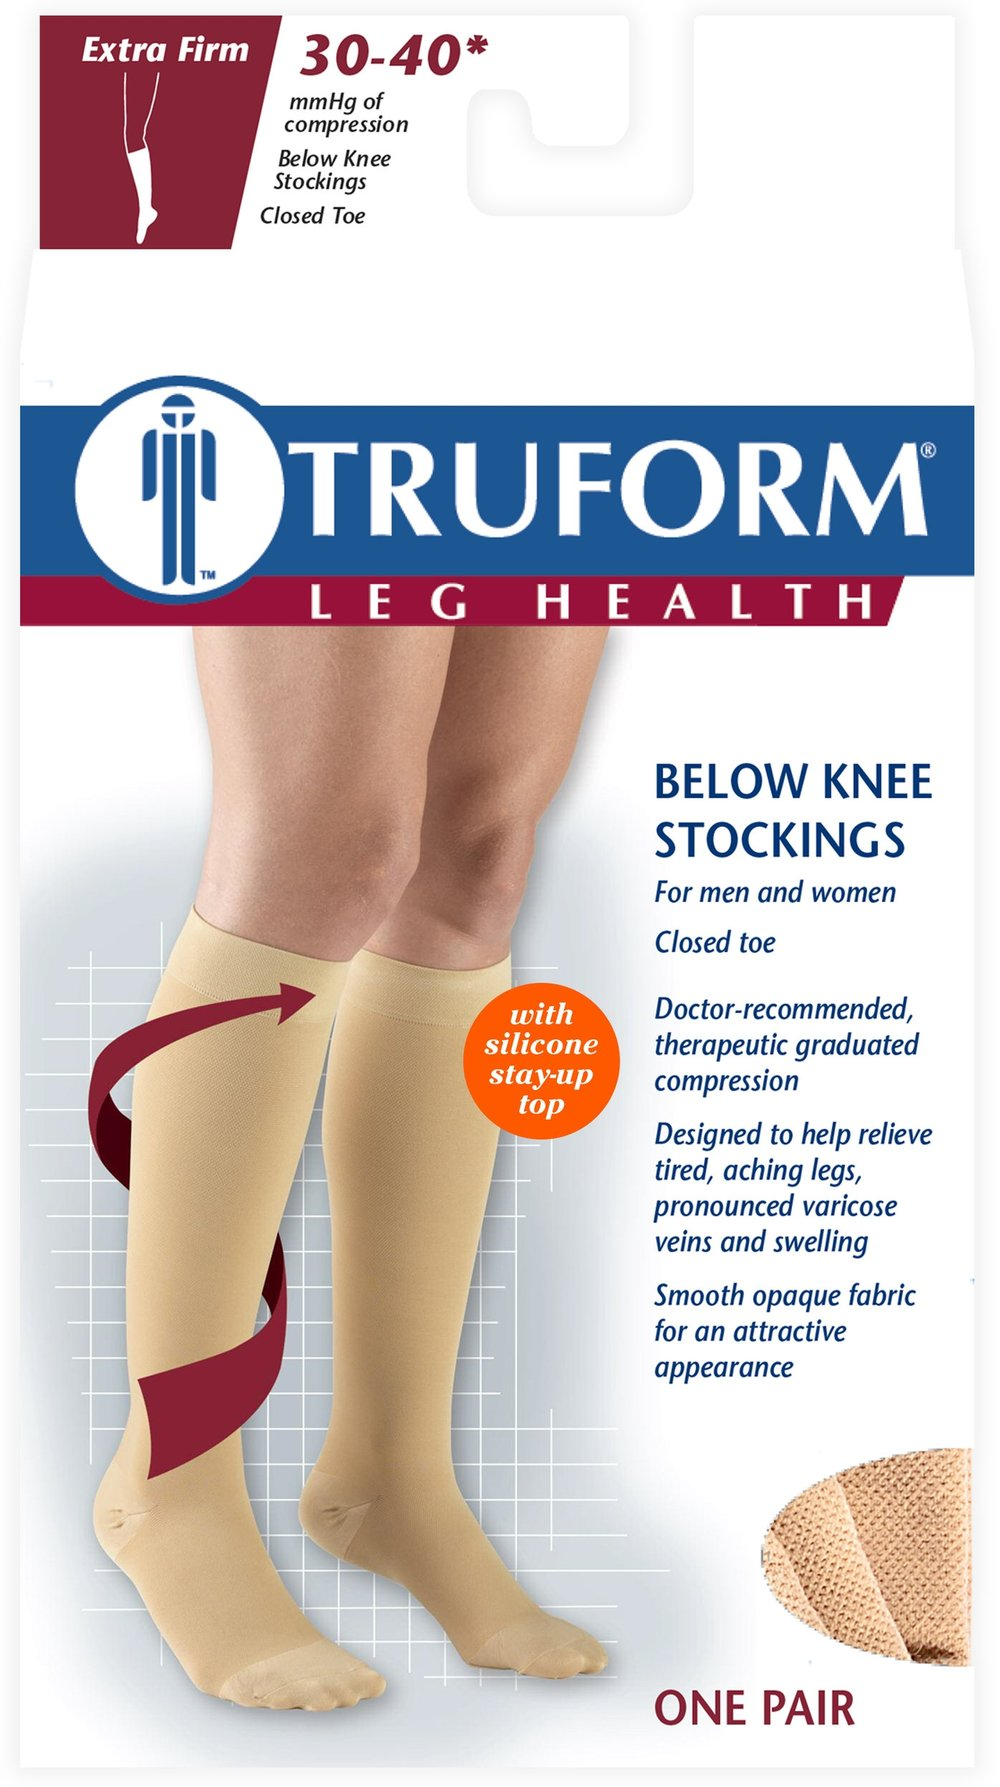 8844 / KNEE HIGH-SILICONE DOT TOP, CLOSED TOE / 30-40 MMHG PACKAGING IMAGE